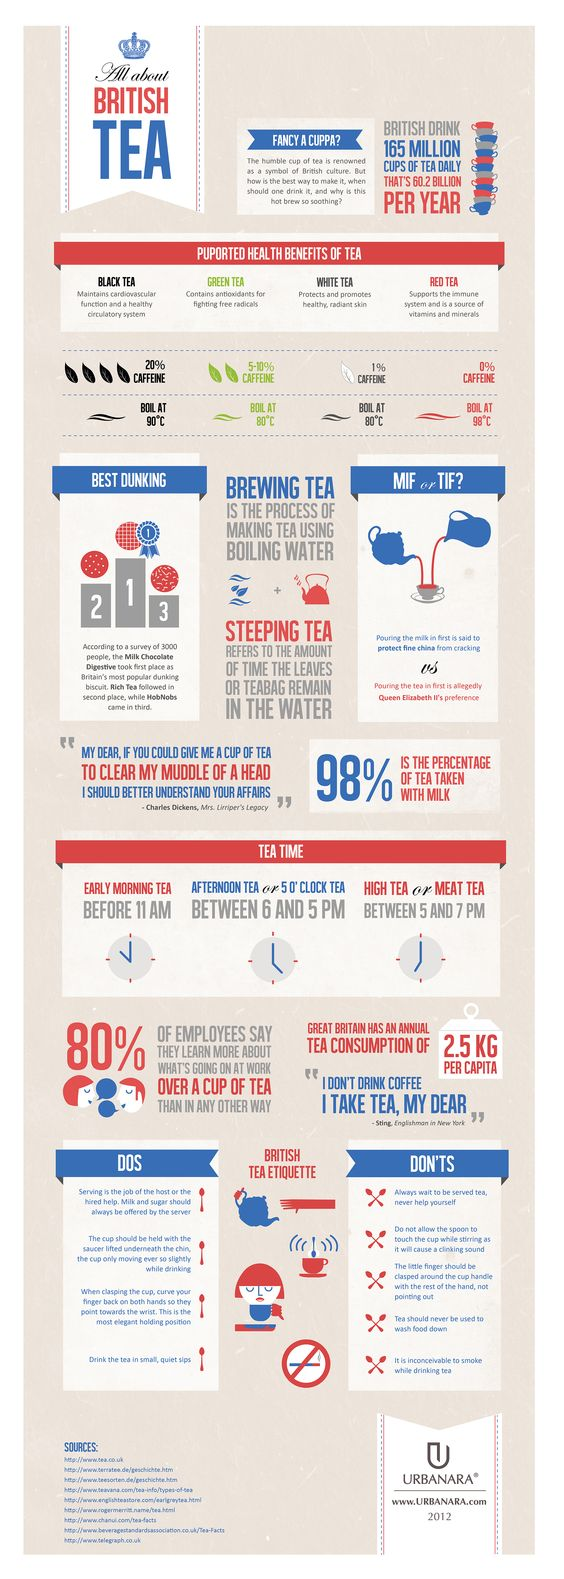 ALL ABOUT BRITISH TEA...